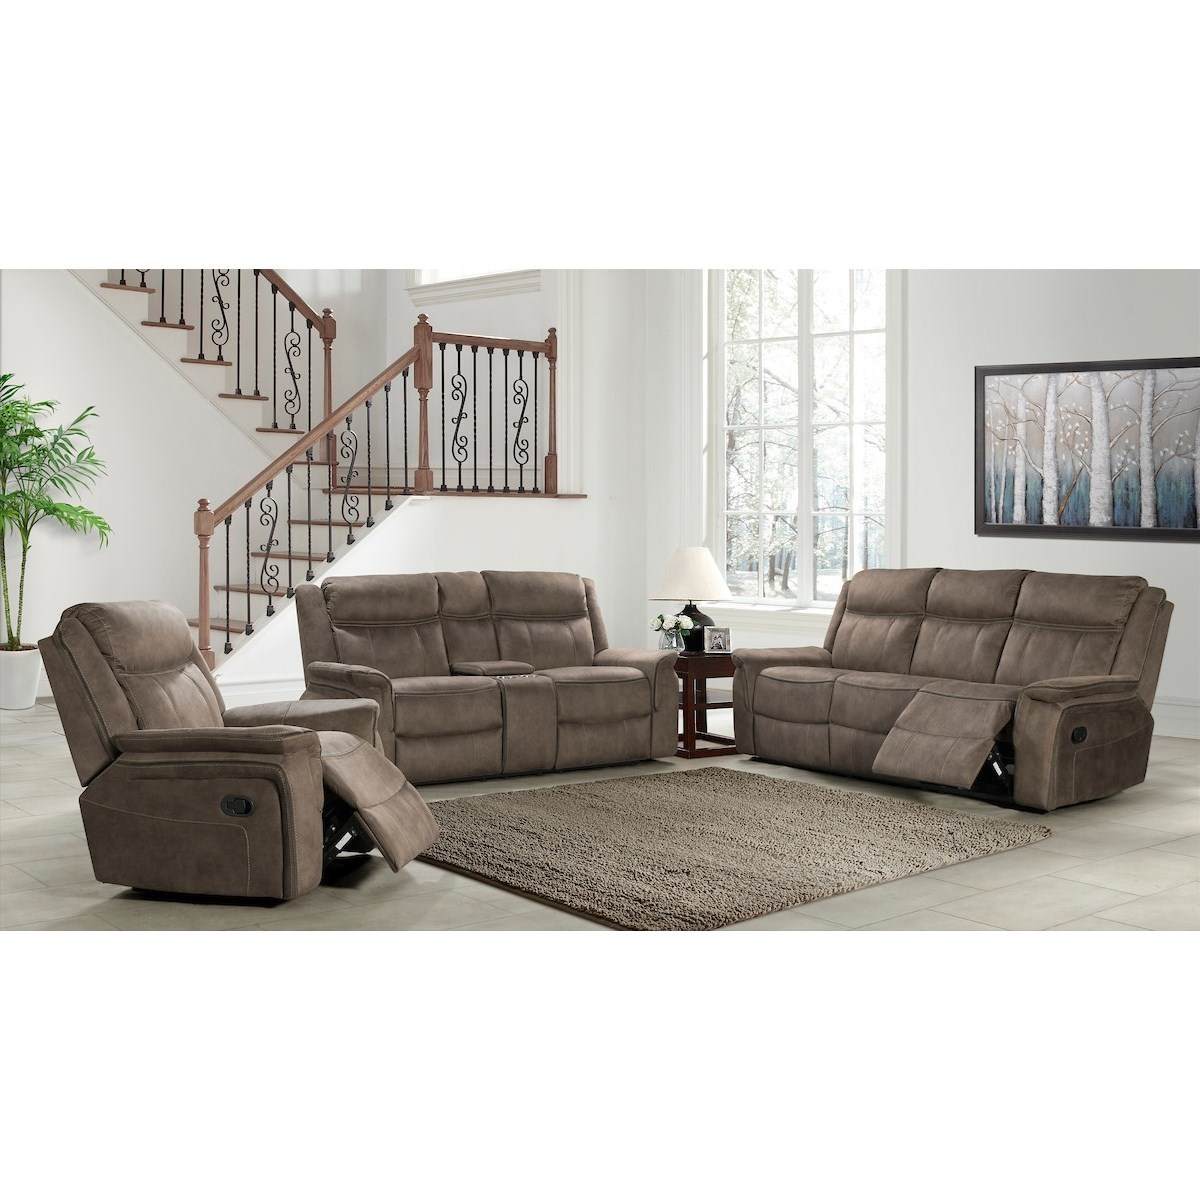 Kisner Reclining Living Room Group by Klaussner International at Northeast Factory Direct